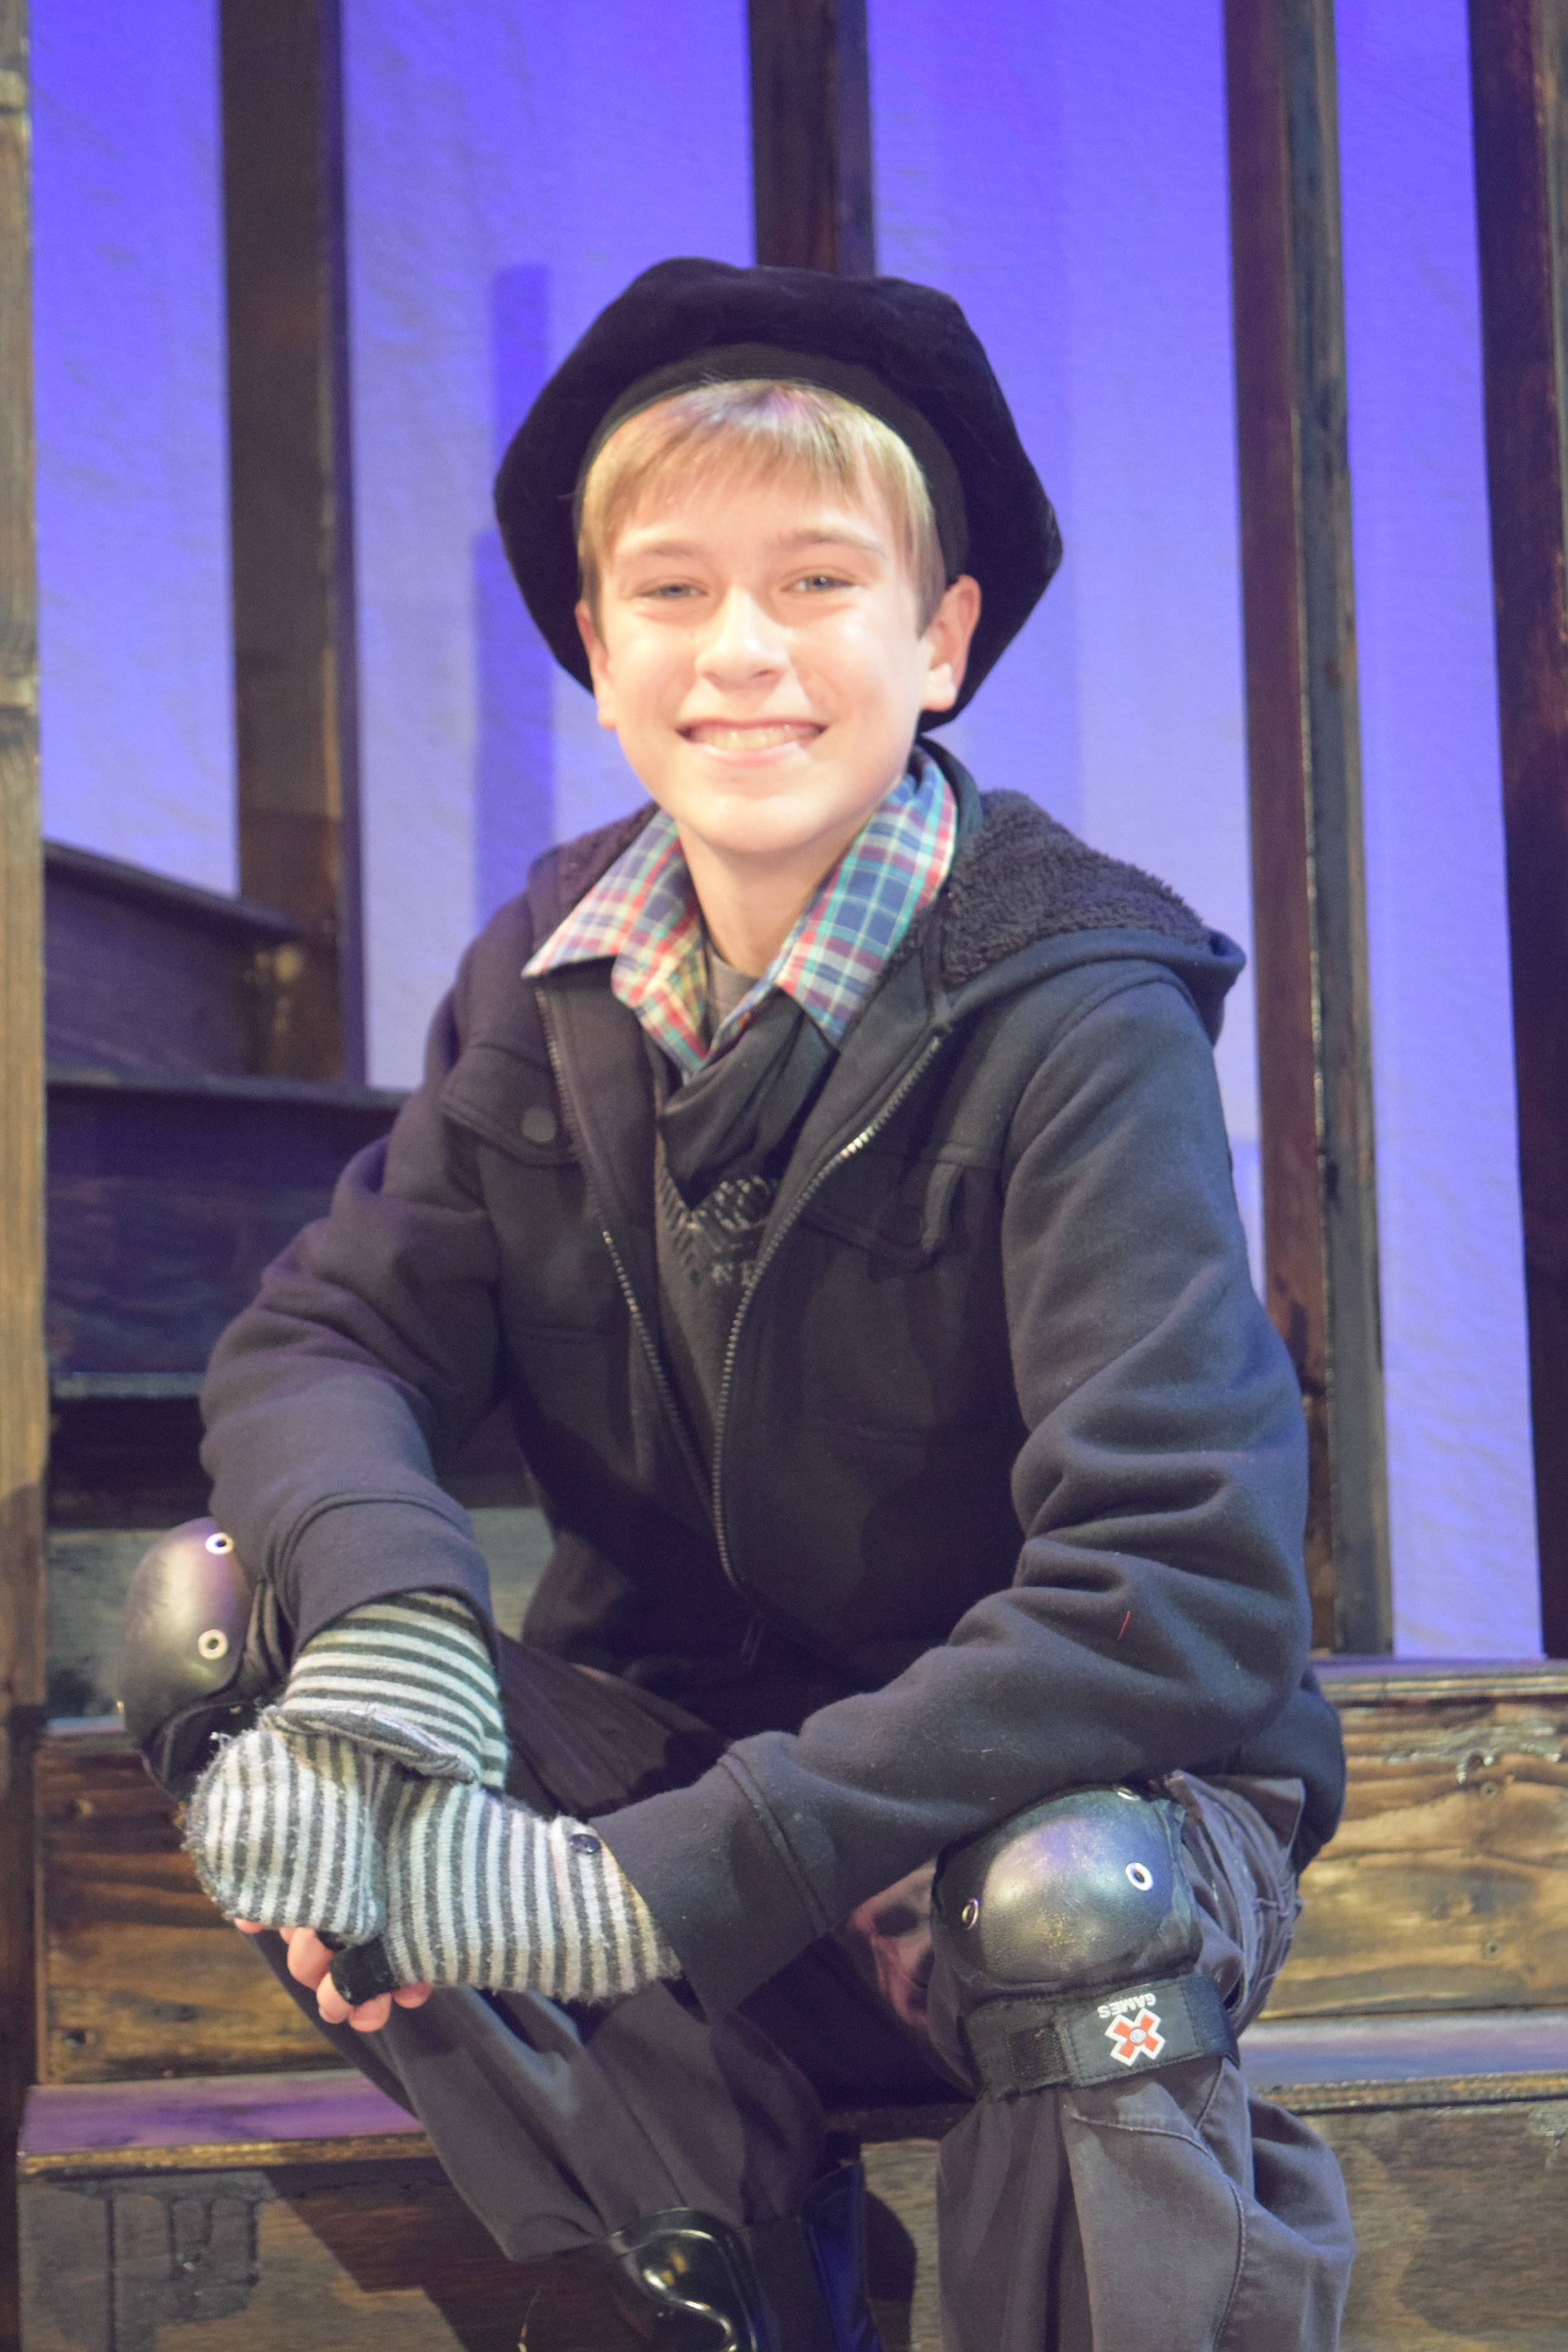 Owen Kupferer as Joly